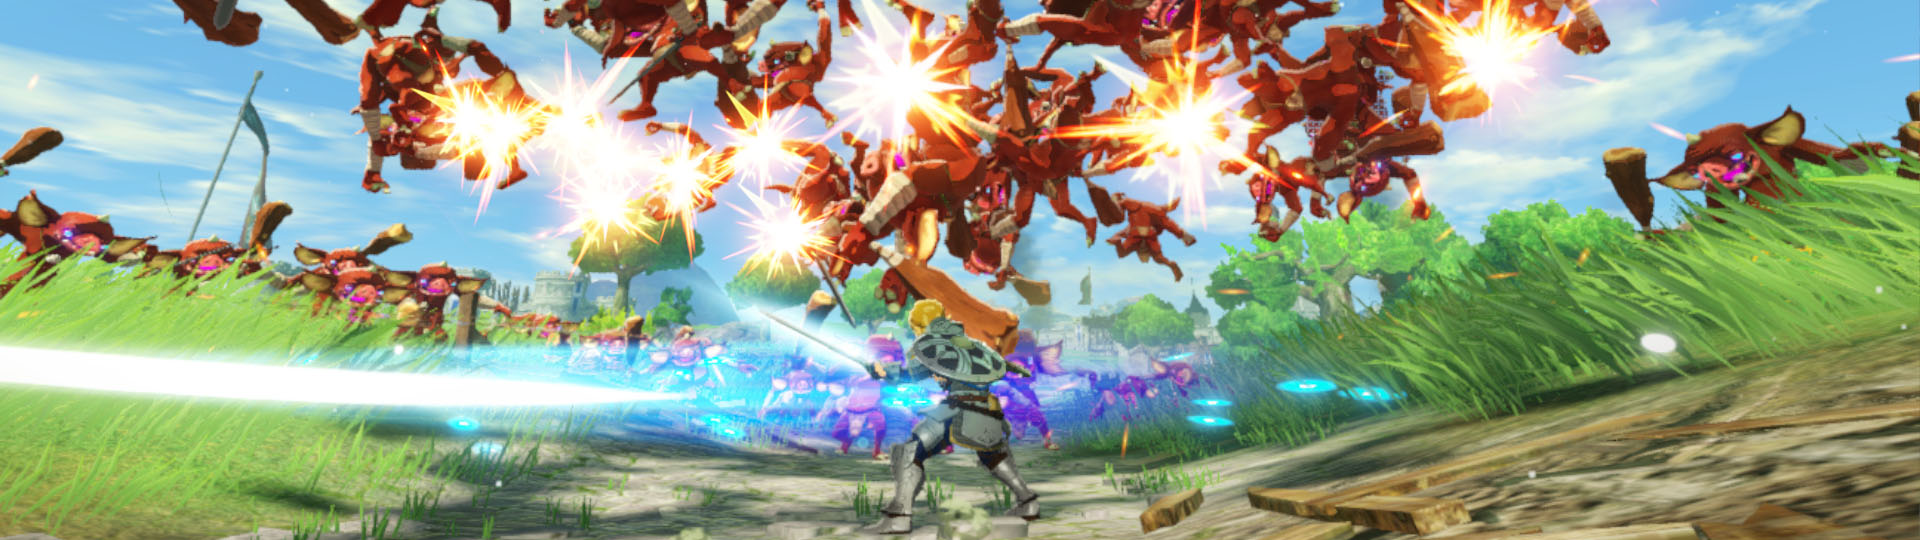 Review Hyrule Warriors The Age Of Disaster Jioforme